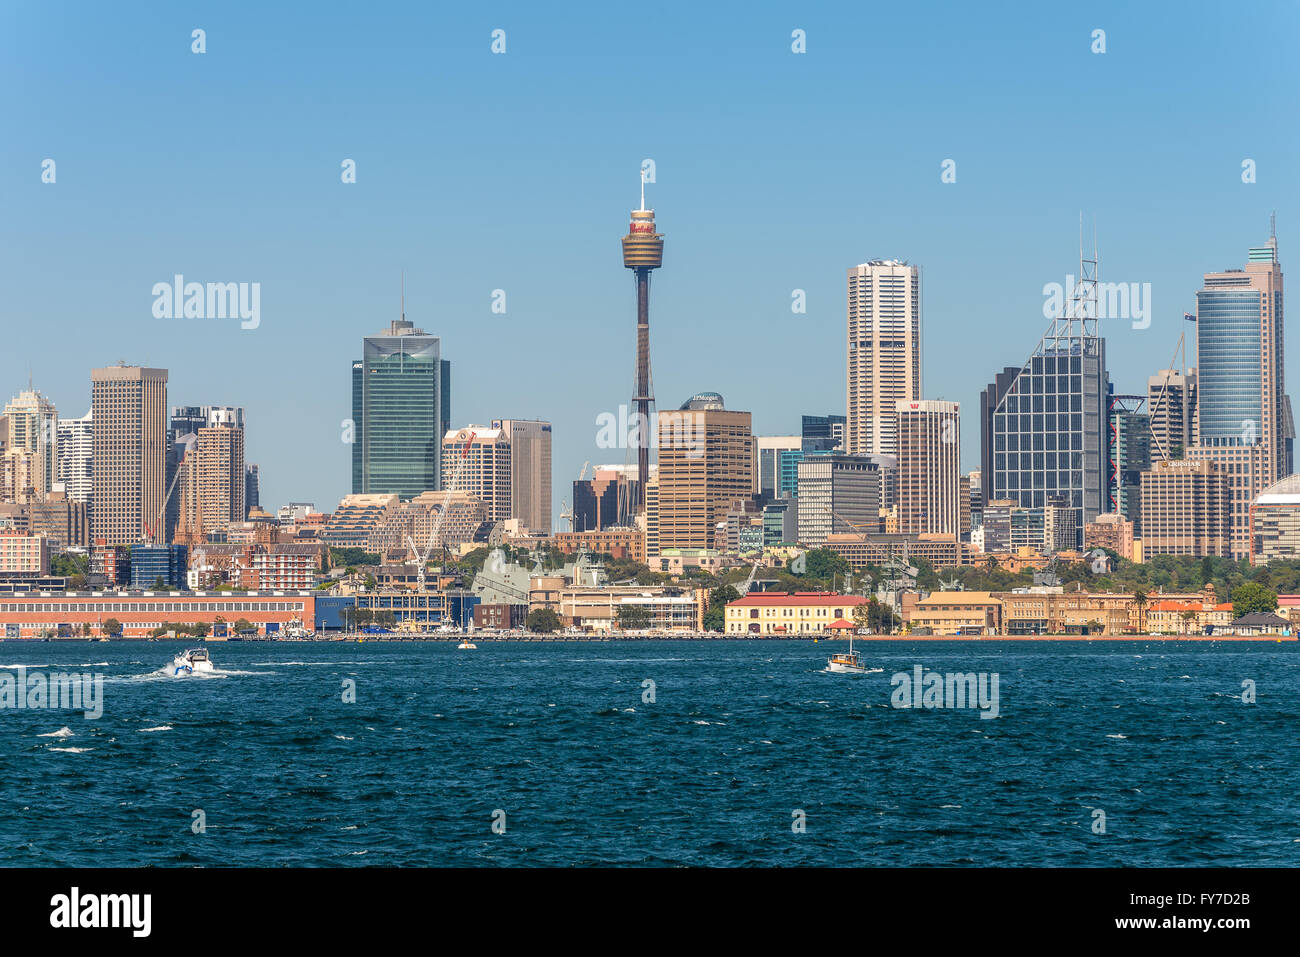 Australian Sydney landmark - city CBD high rises and towers forming megapolis cityscape - Stock Image